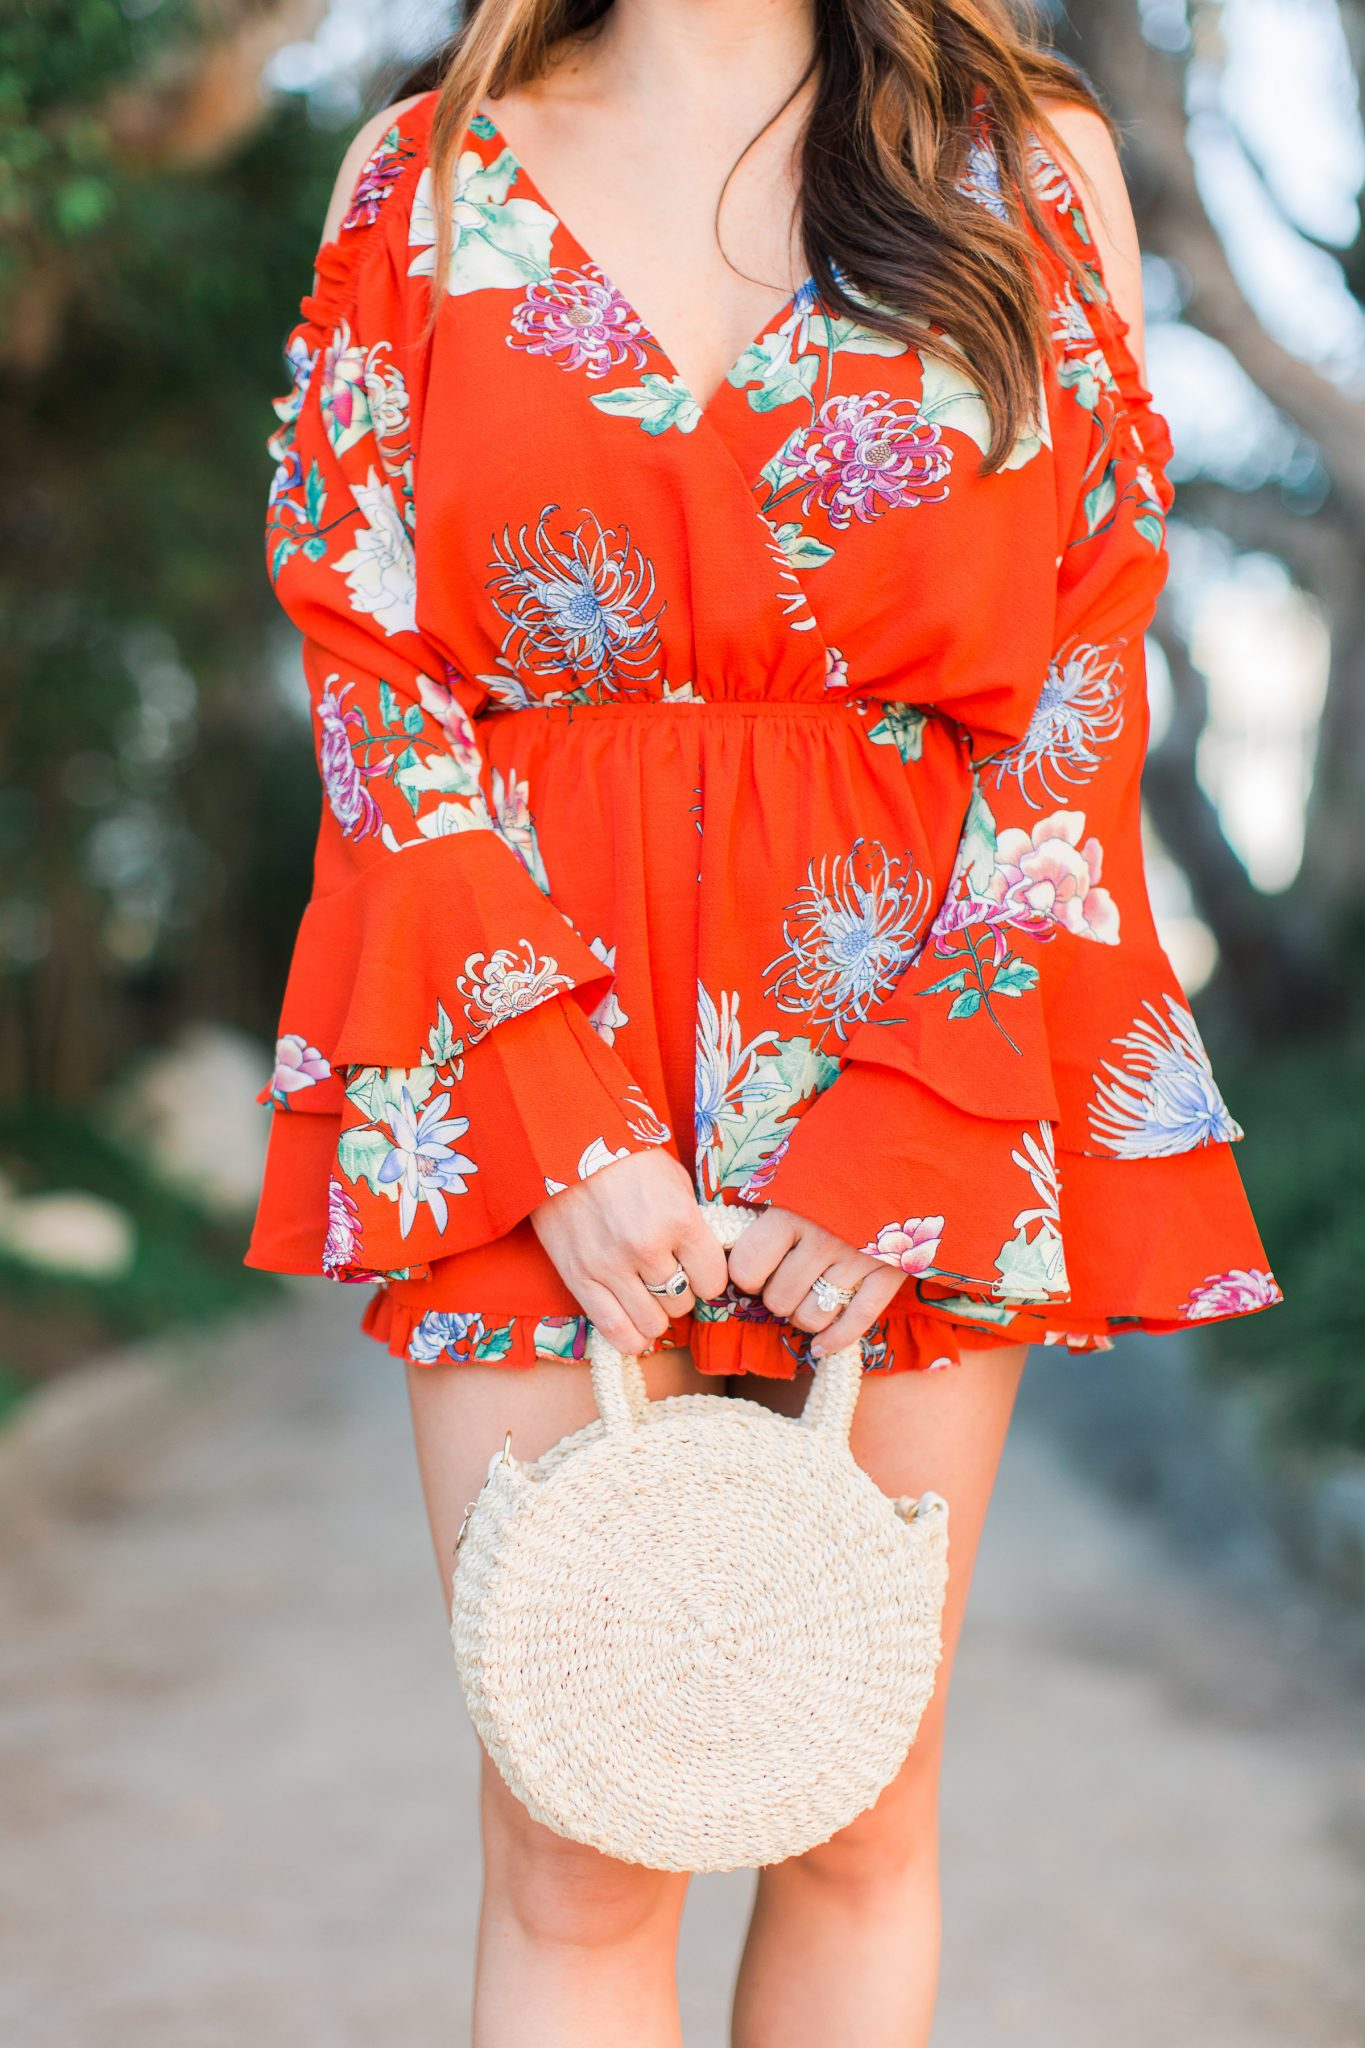 red floral romper and Clare V Petite Alice bag - 3 Ways to Incorporate Florals Into Your Spring Wardrobe featured by popular Orange County fashion blogger, Maxie Elle